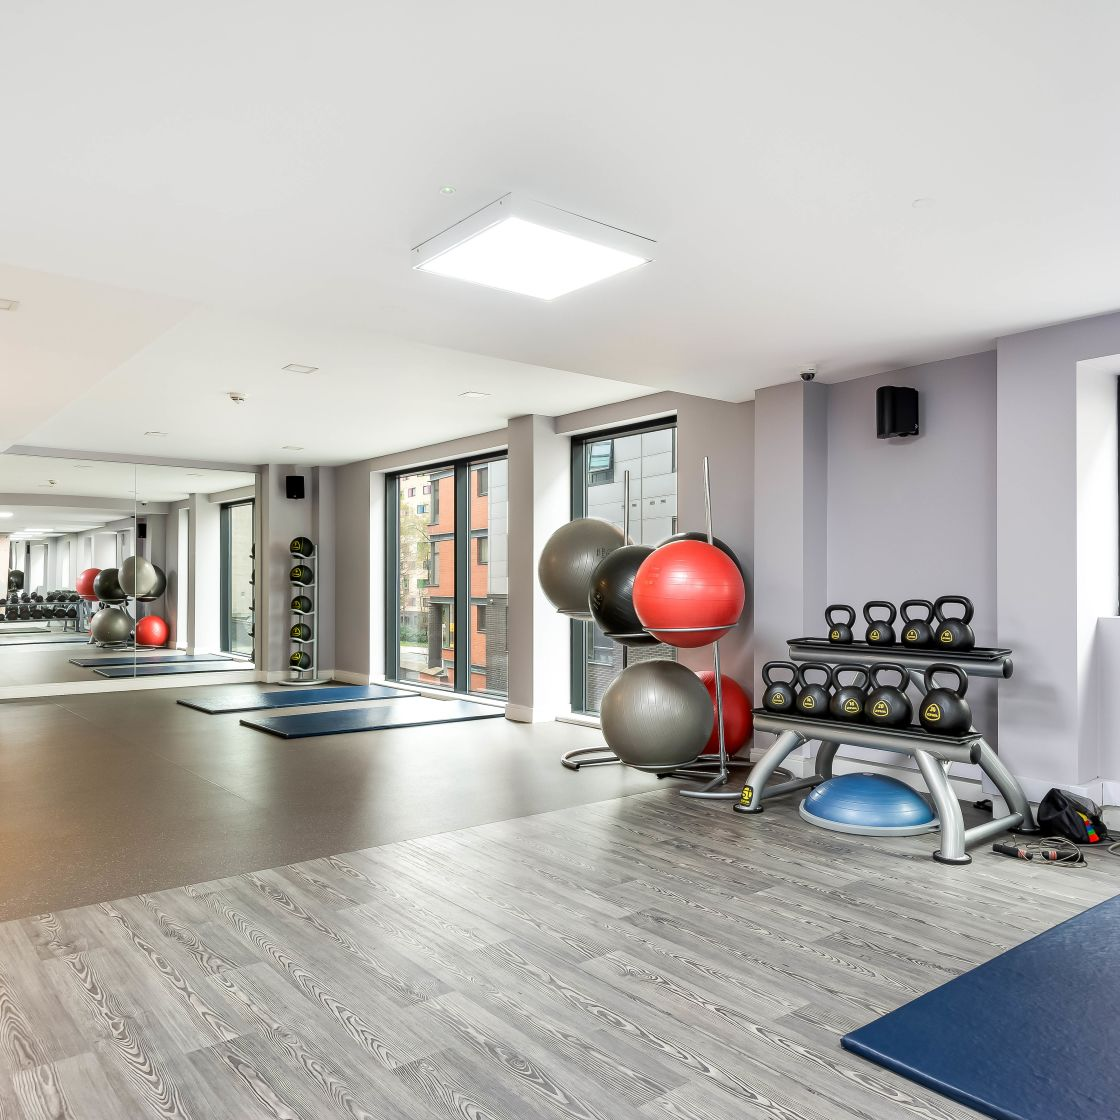 Gym with floor matts, exercise balls and large mirrors at IconInc, The Edge. Student Accommodation in Leeds